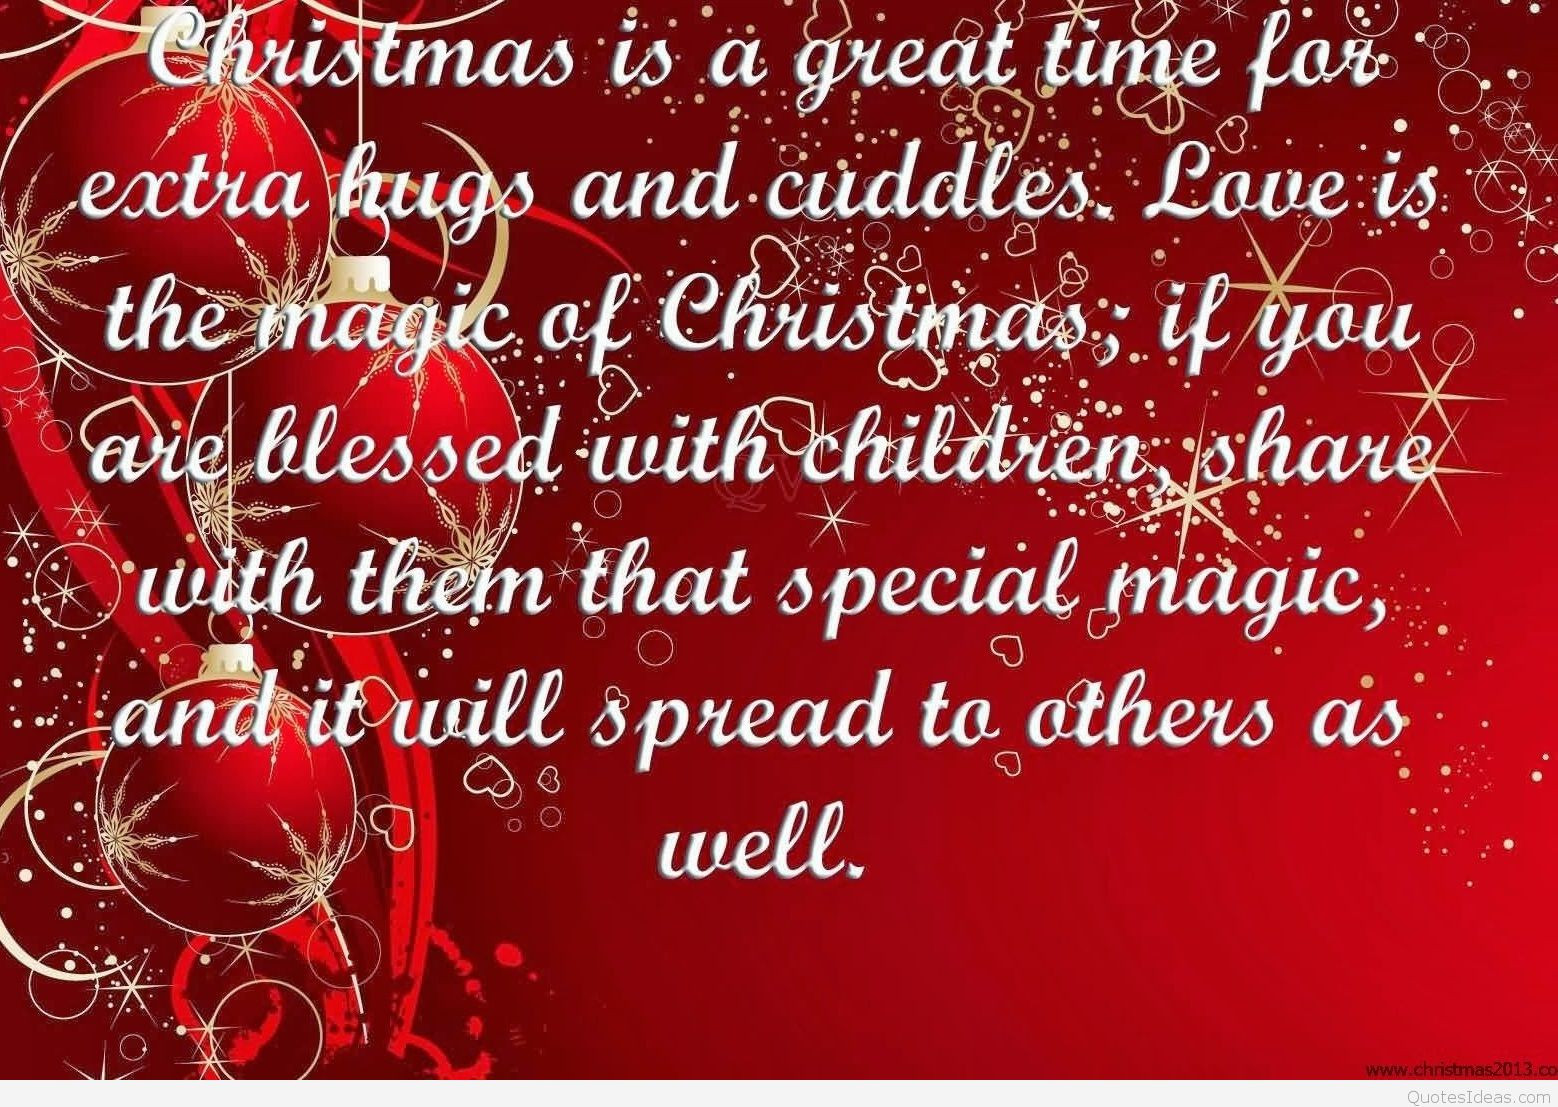 Christmas Pic Quotes  Merry Christmas Blessings Quotes Wallpapers & Cards 2015